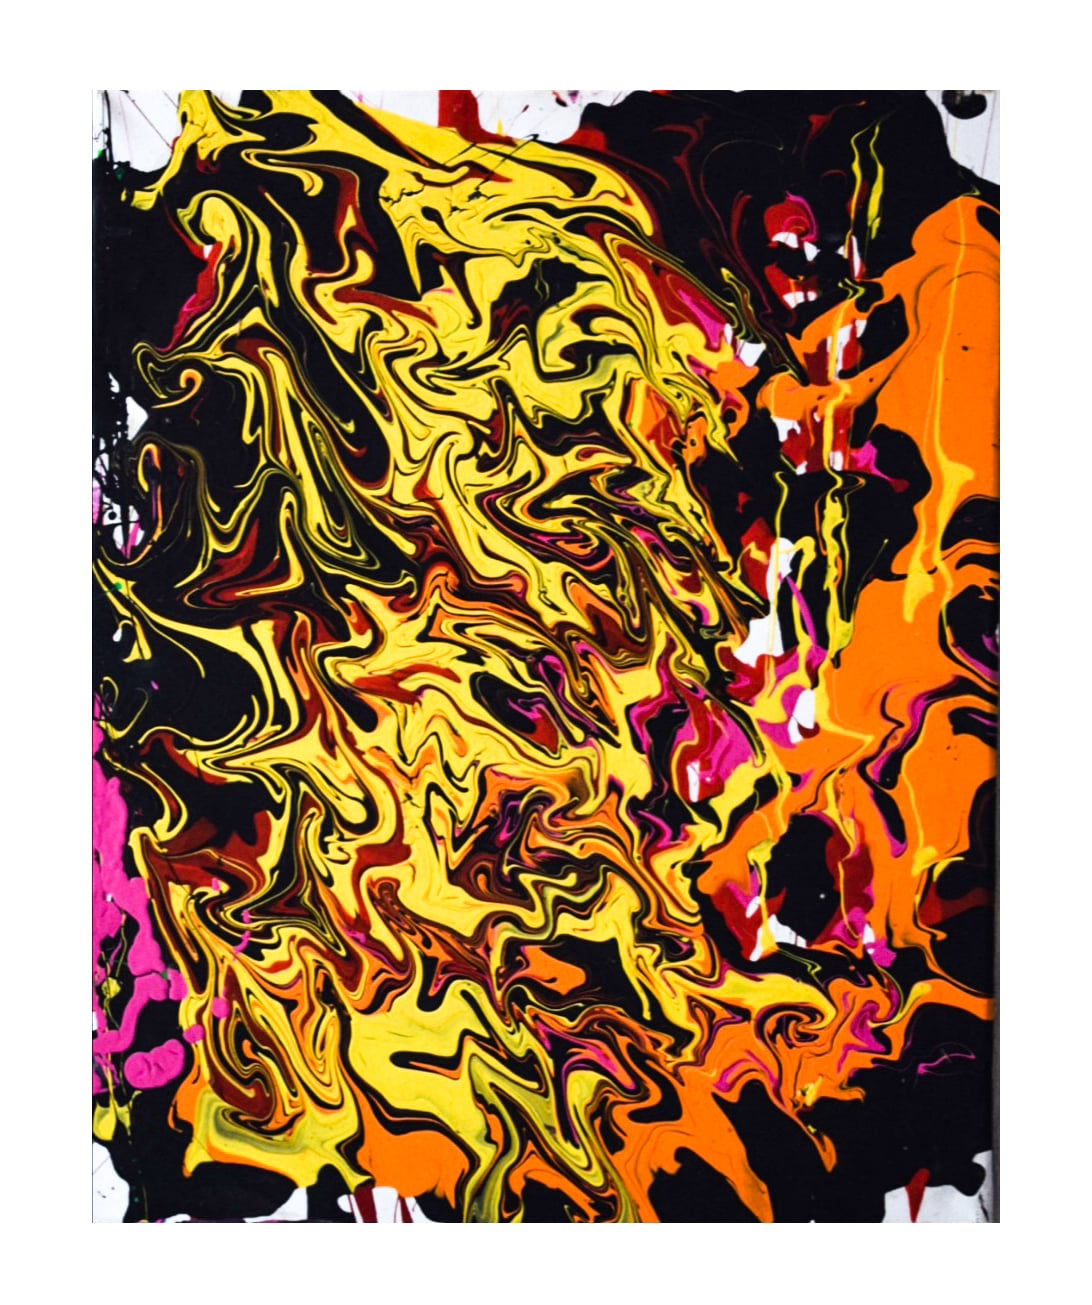 Acrylic Pouring #3